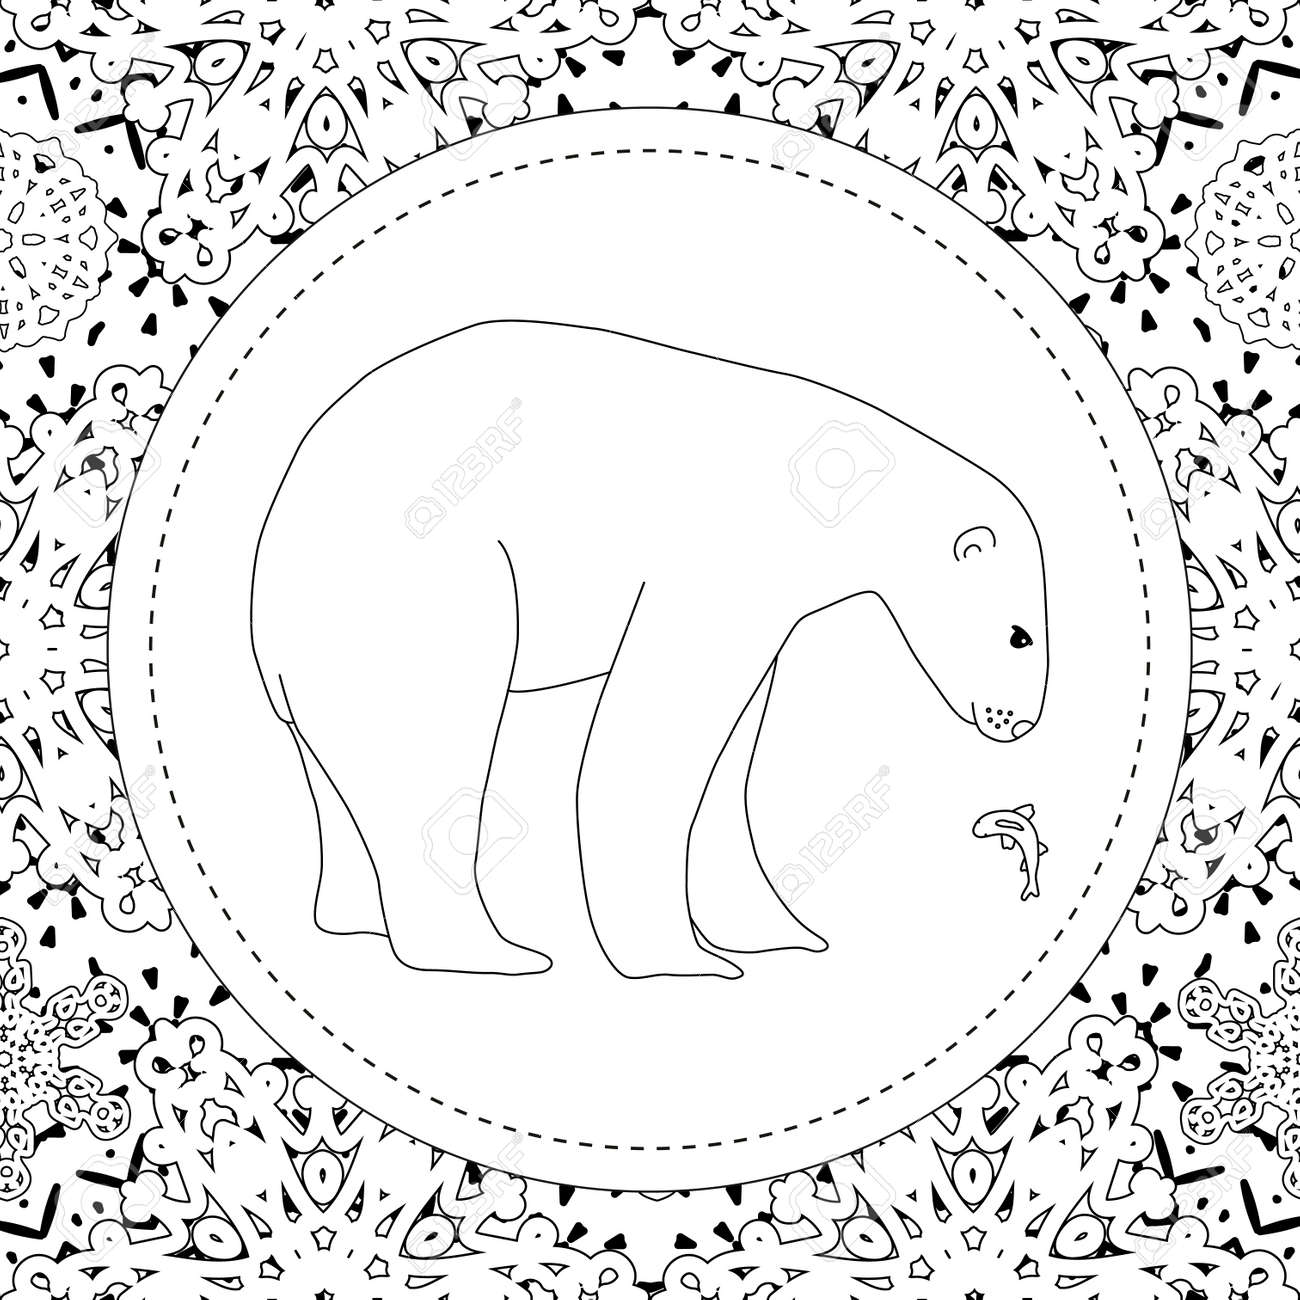 Coloring pages. A polar bear stands in the snow. A winter postcard.